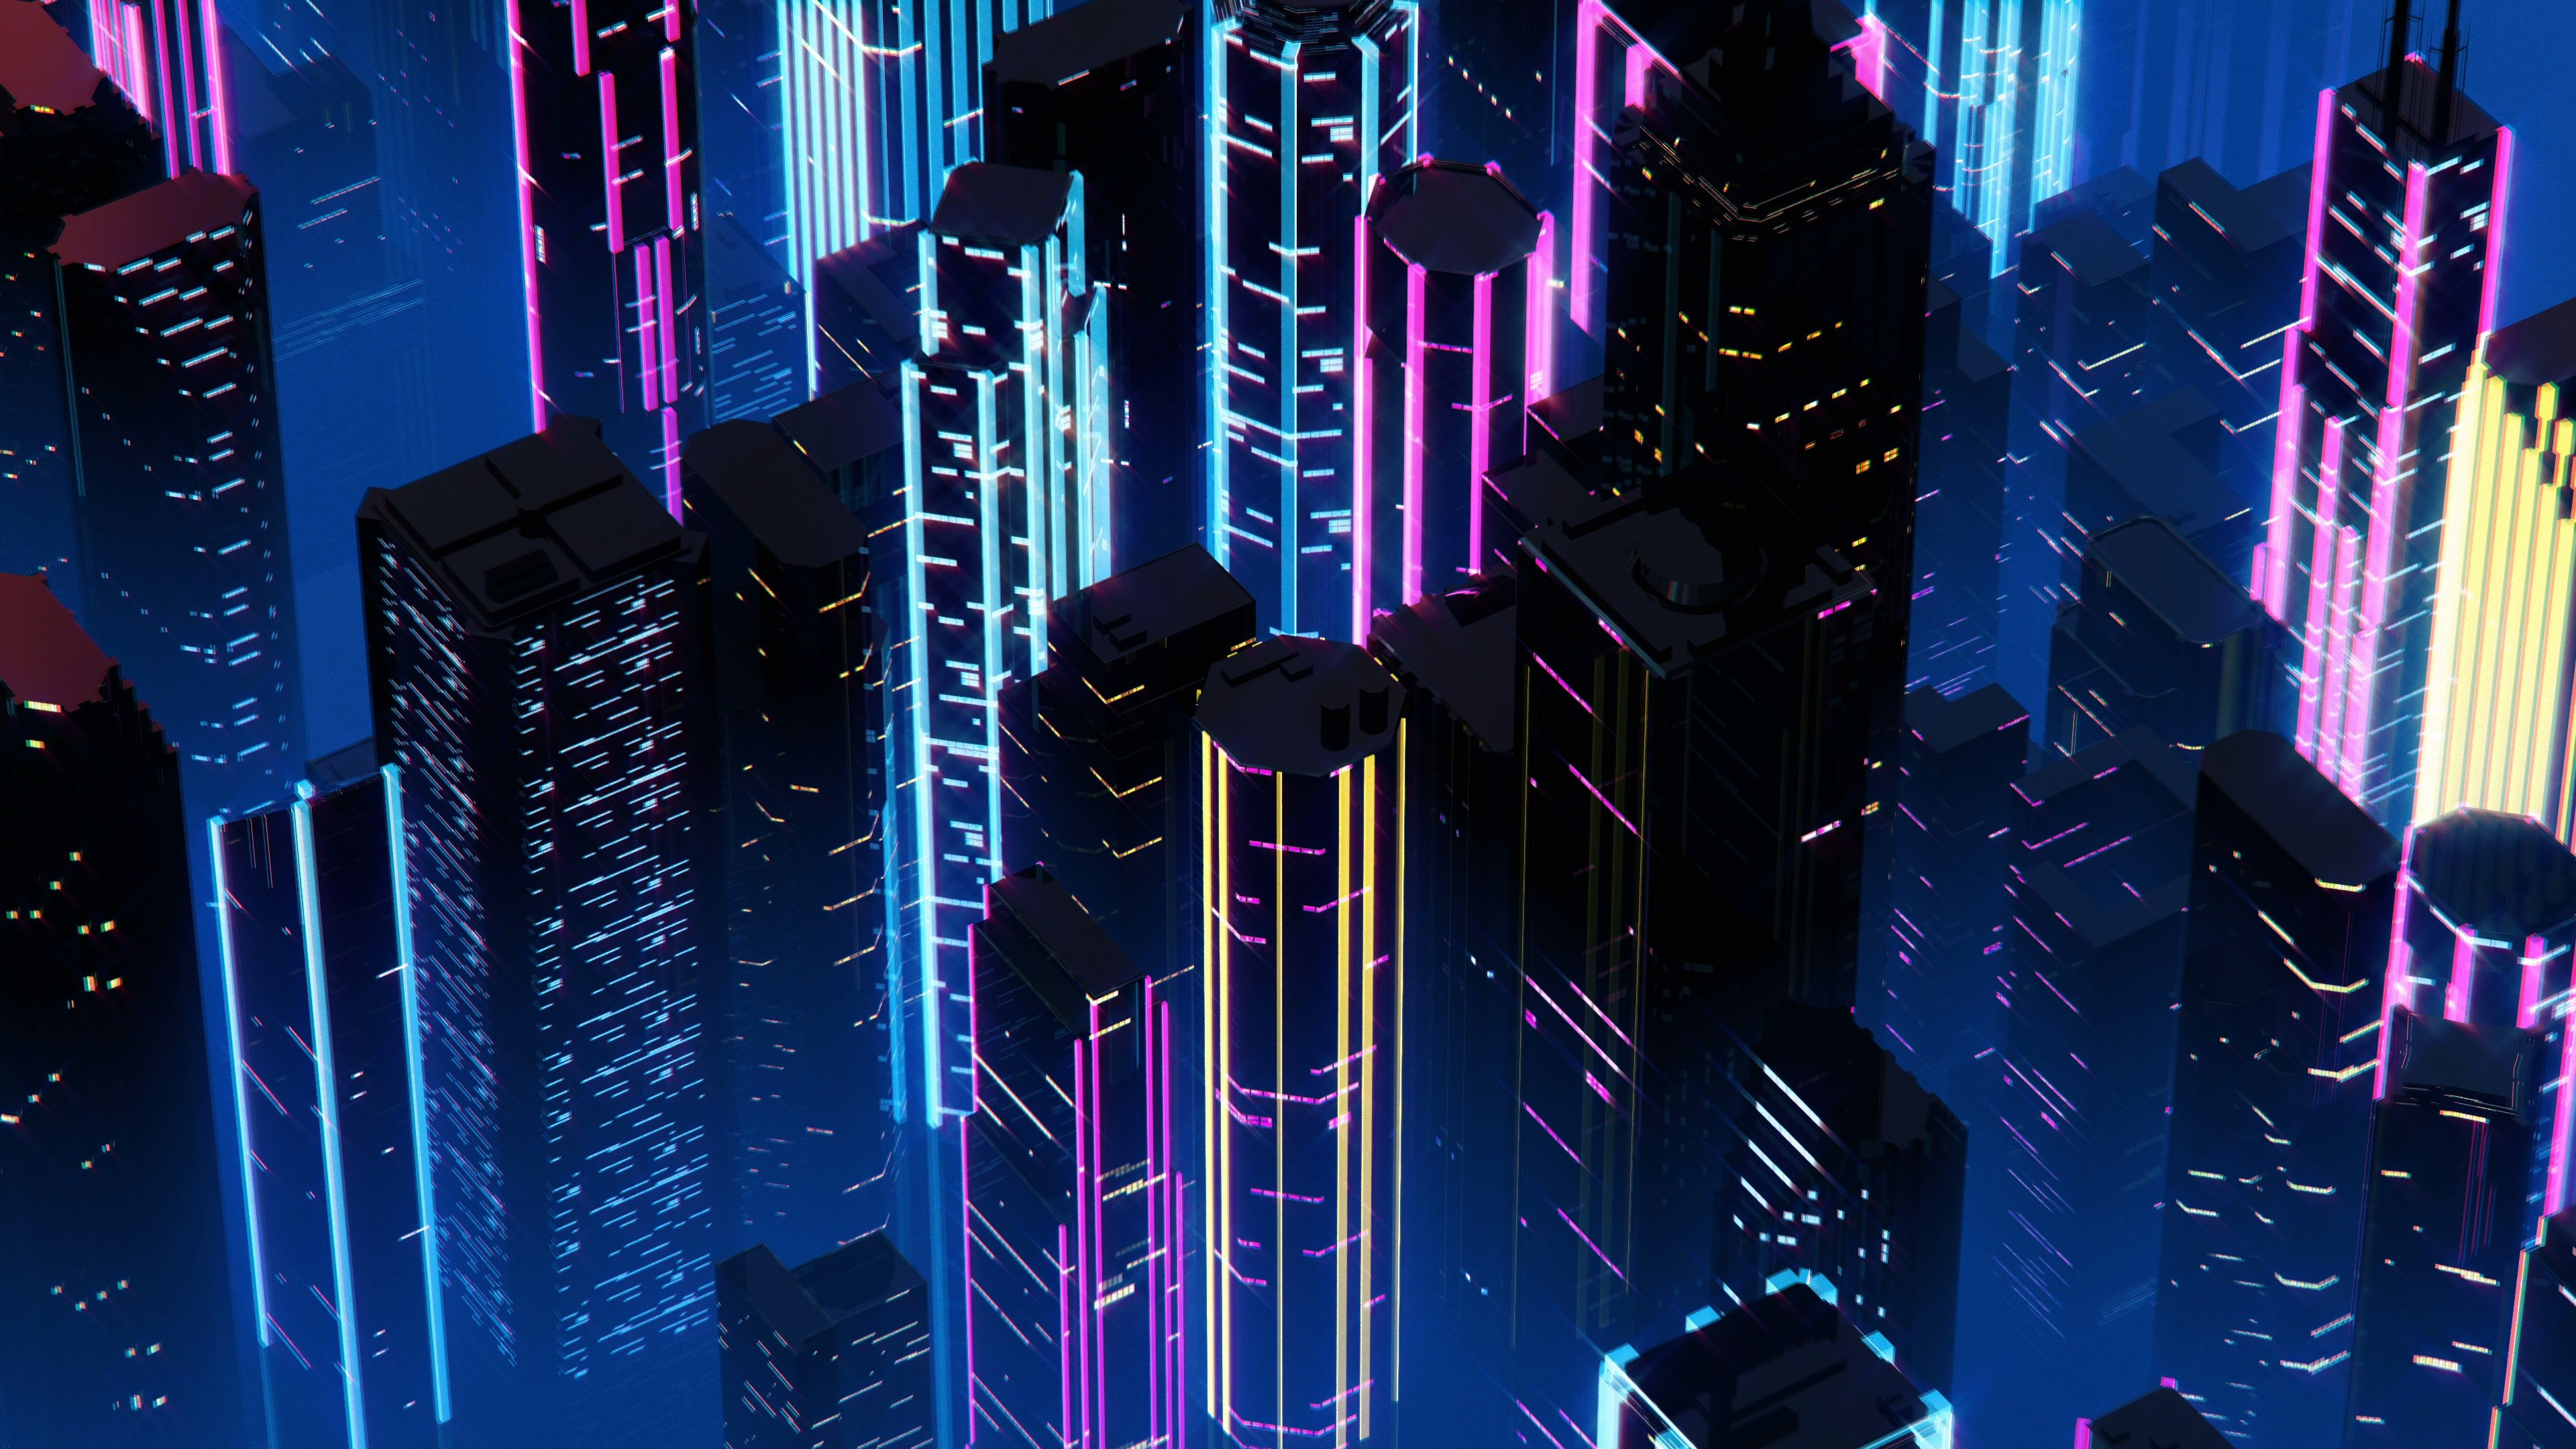 Skyscrapers With Neon Lights In Night City Synthwave Style 3d Animation Stock Footage Ad Night City Lights Skyscrape Neon Wallpaper City Wallpaper Neon Art